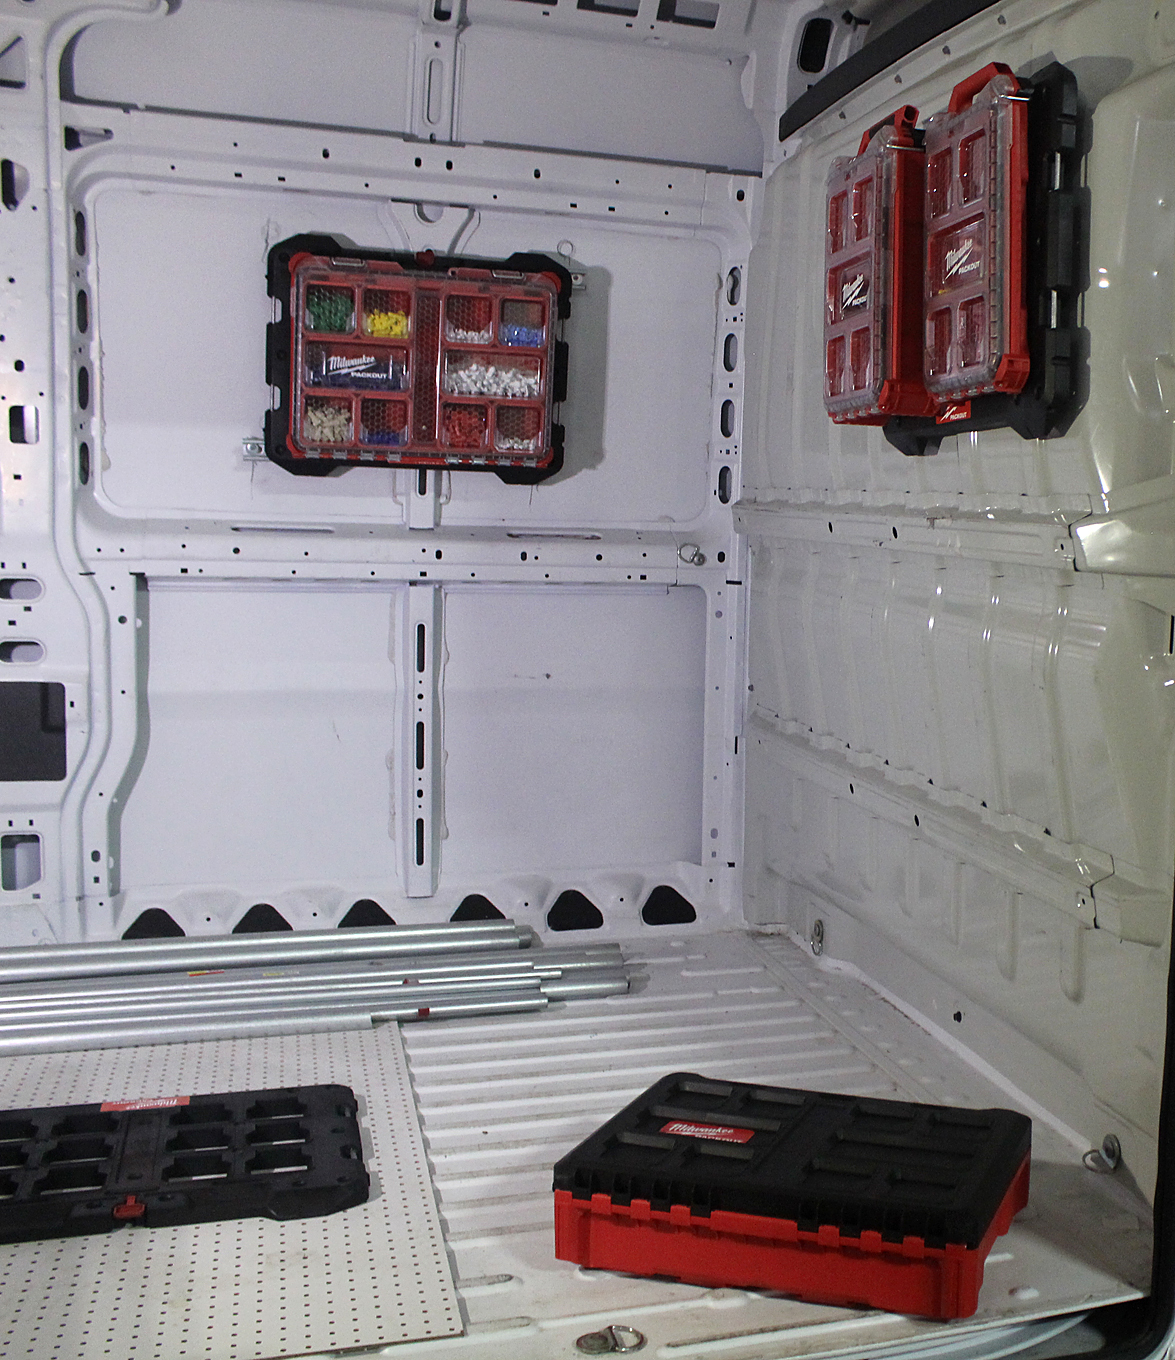 The new PACKOUT Modular Storage Expansion can also be mounted to a service vehicle.